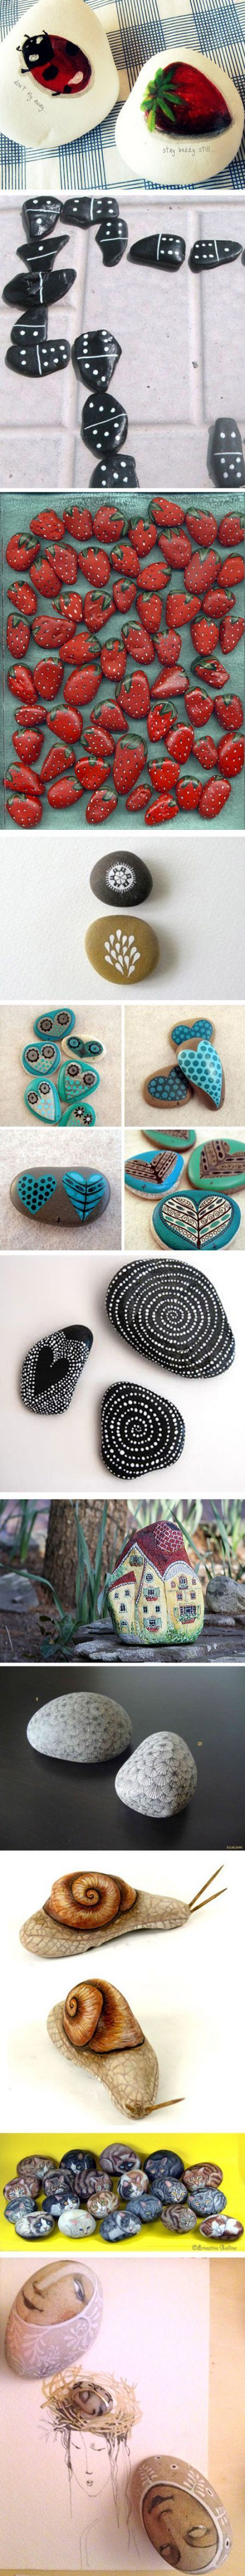 Painted pebbles – a great idea to entertain the kids on a rainy beach holiday!